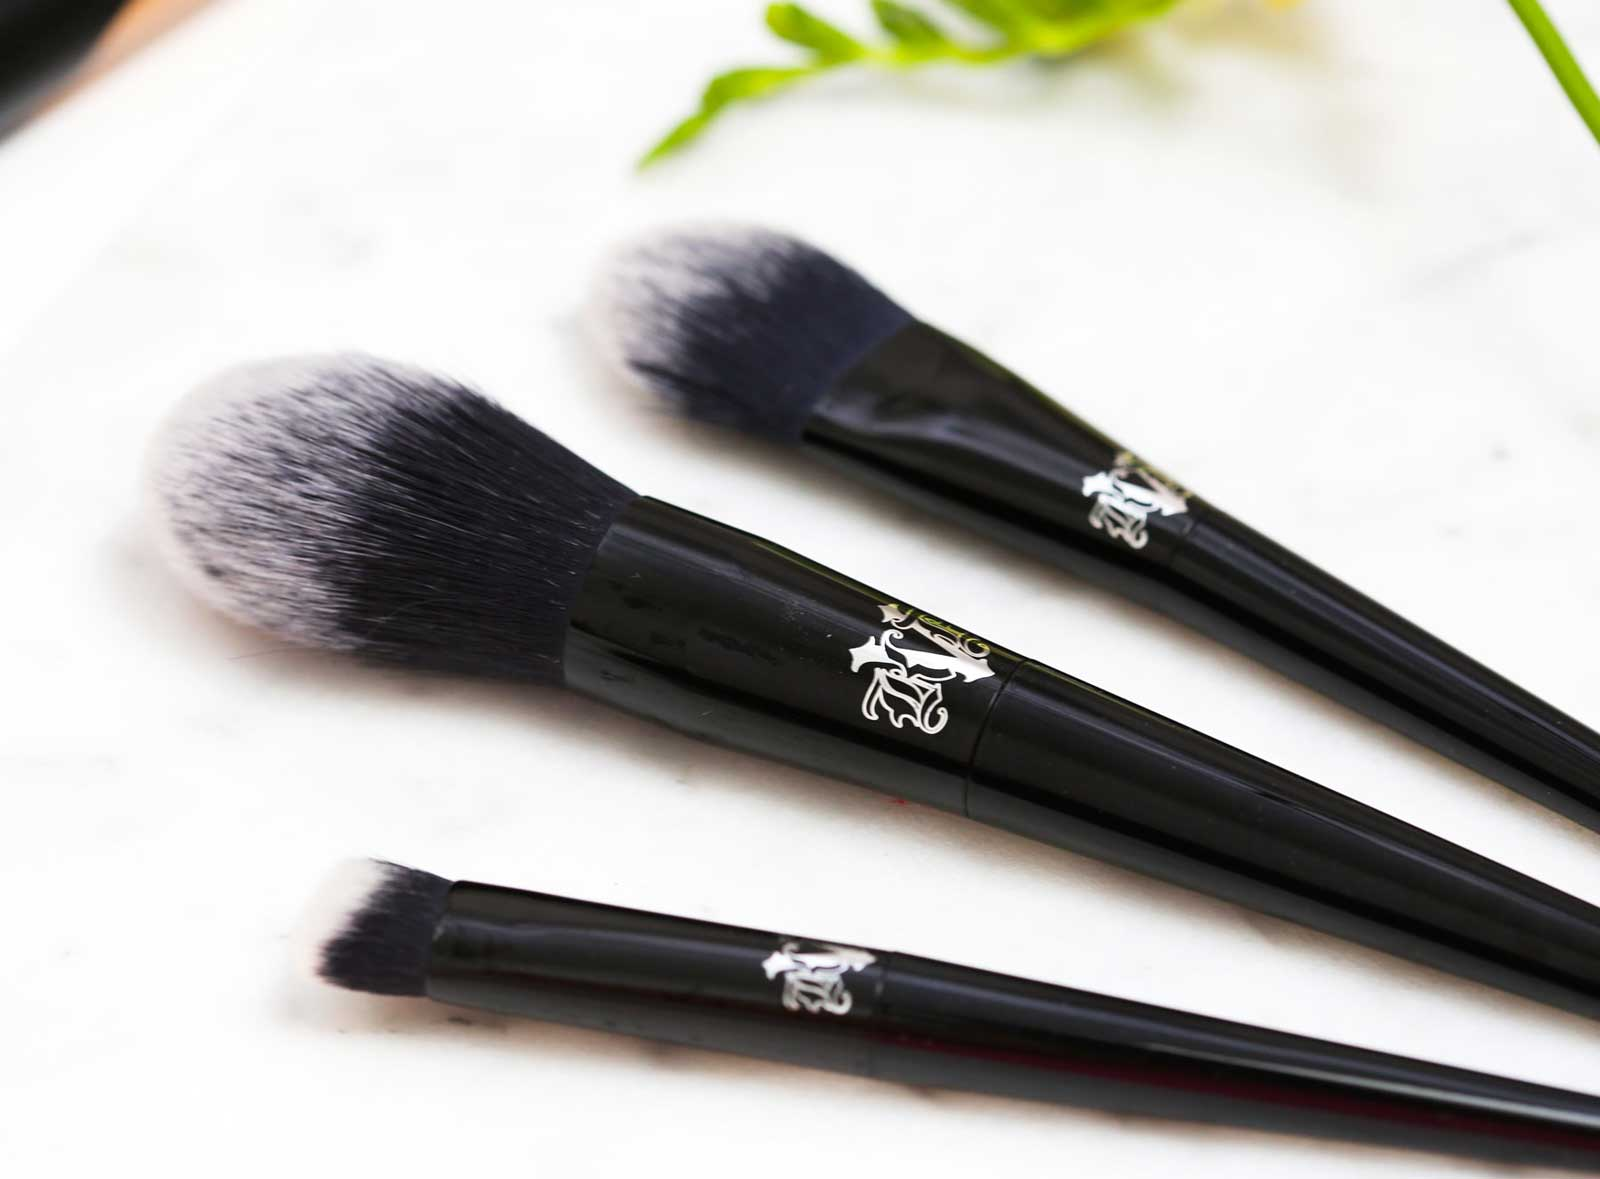 Best Cruelty-Free Makeup Brushes